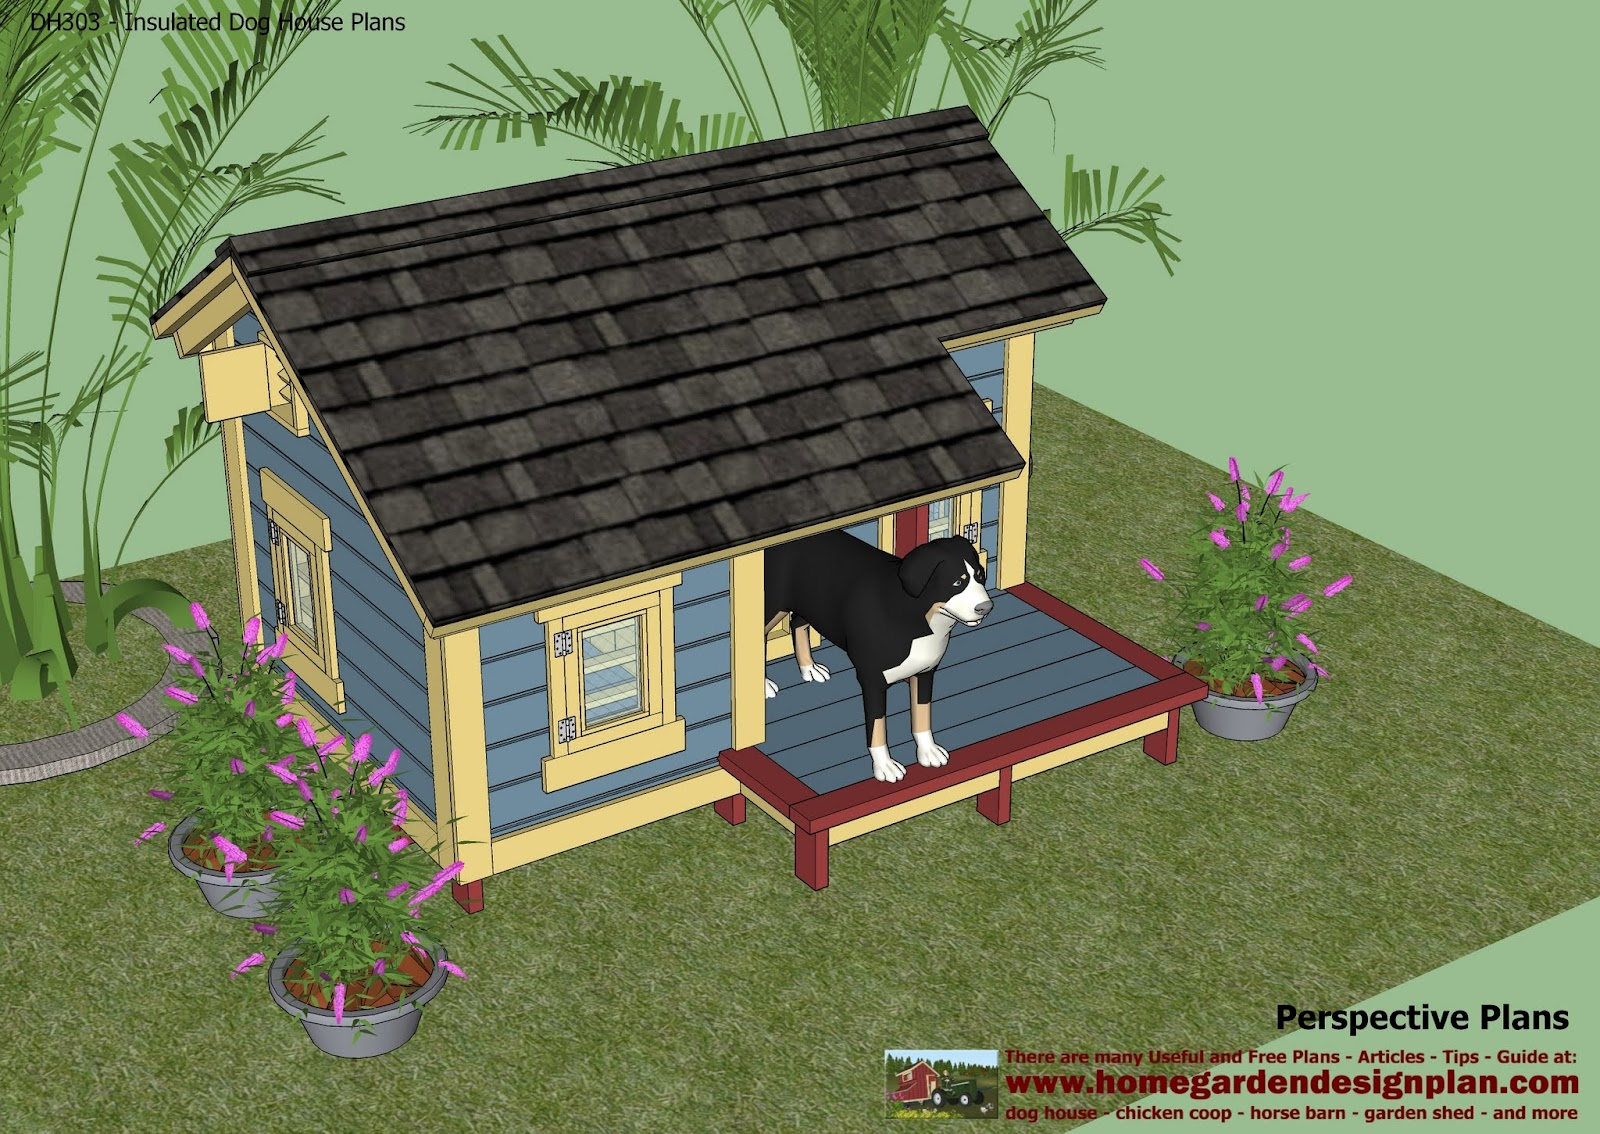 Insulated dog house plans canada storage shed housing for Free home plans canada